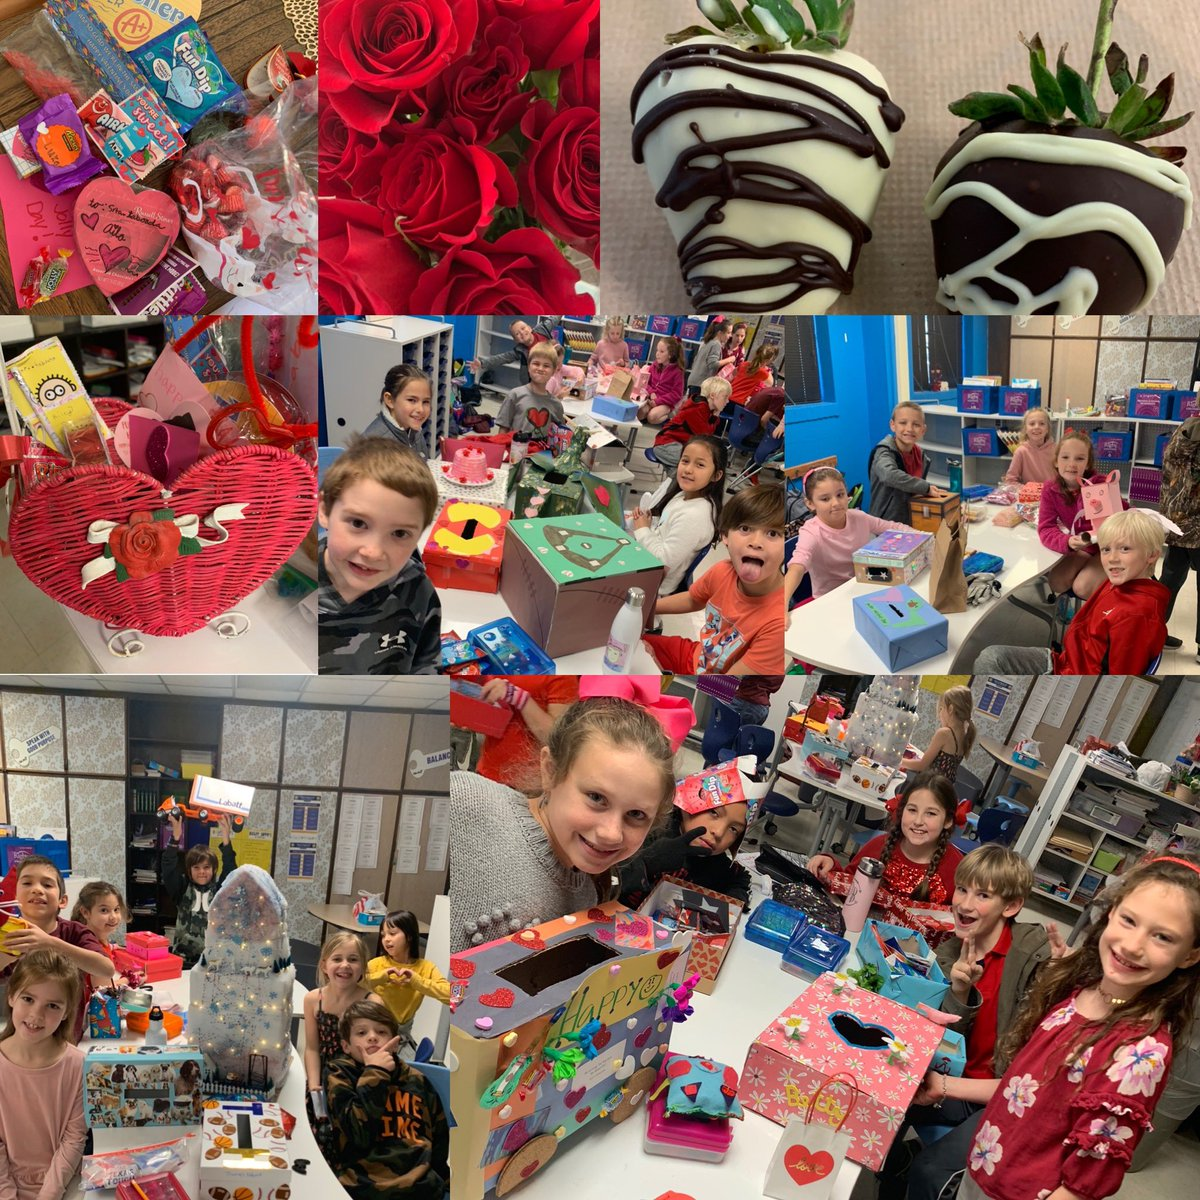 Happy Valentine's Day to all! May today remind us why we do what we do. May love always surround each of us and may we remember how much our @AHISD kiddos' look up to us; and therefore, we must lead by example & do all things with love! ¡Feliz día del amor y la amistad ❤️!